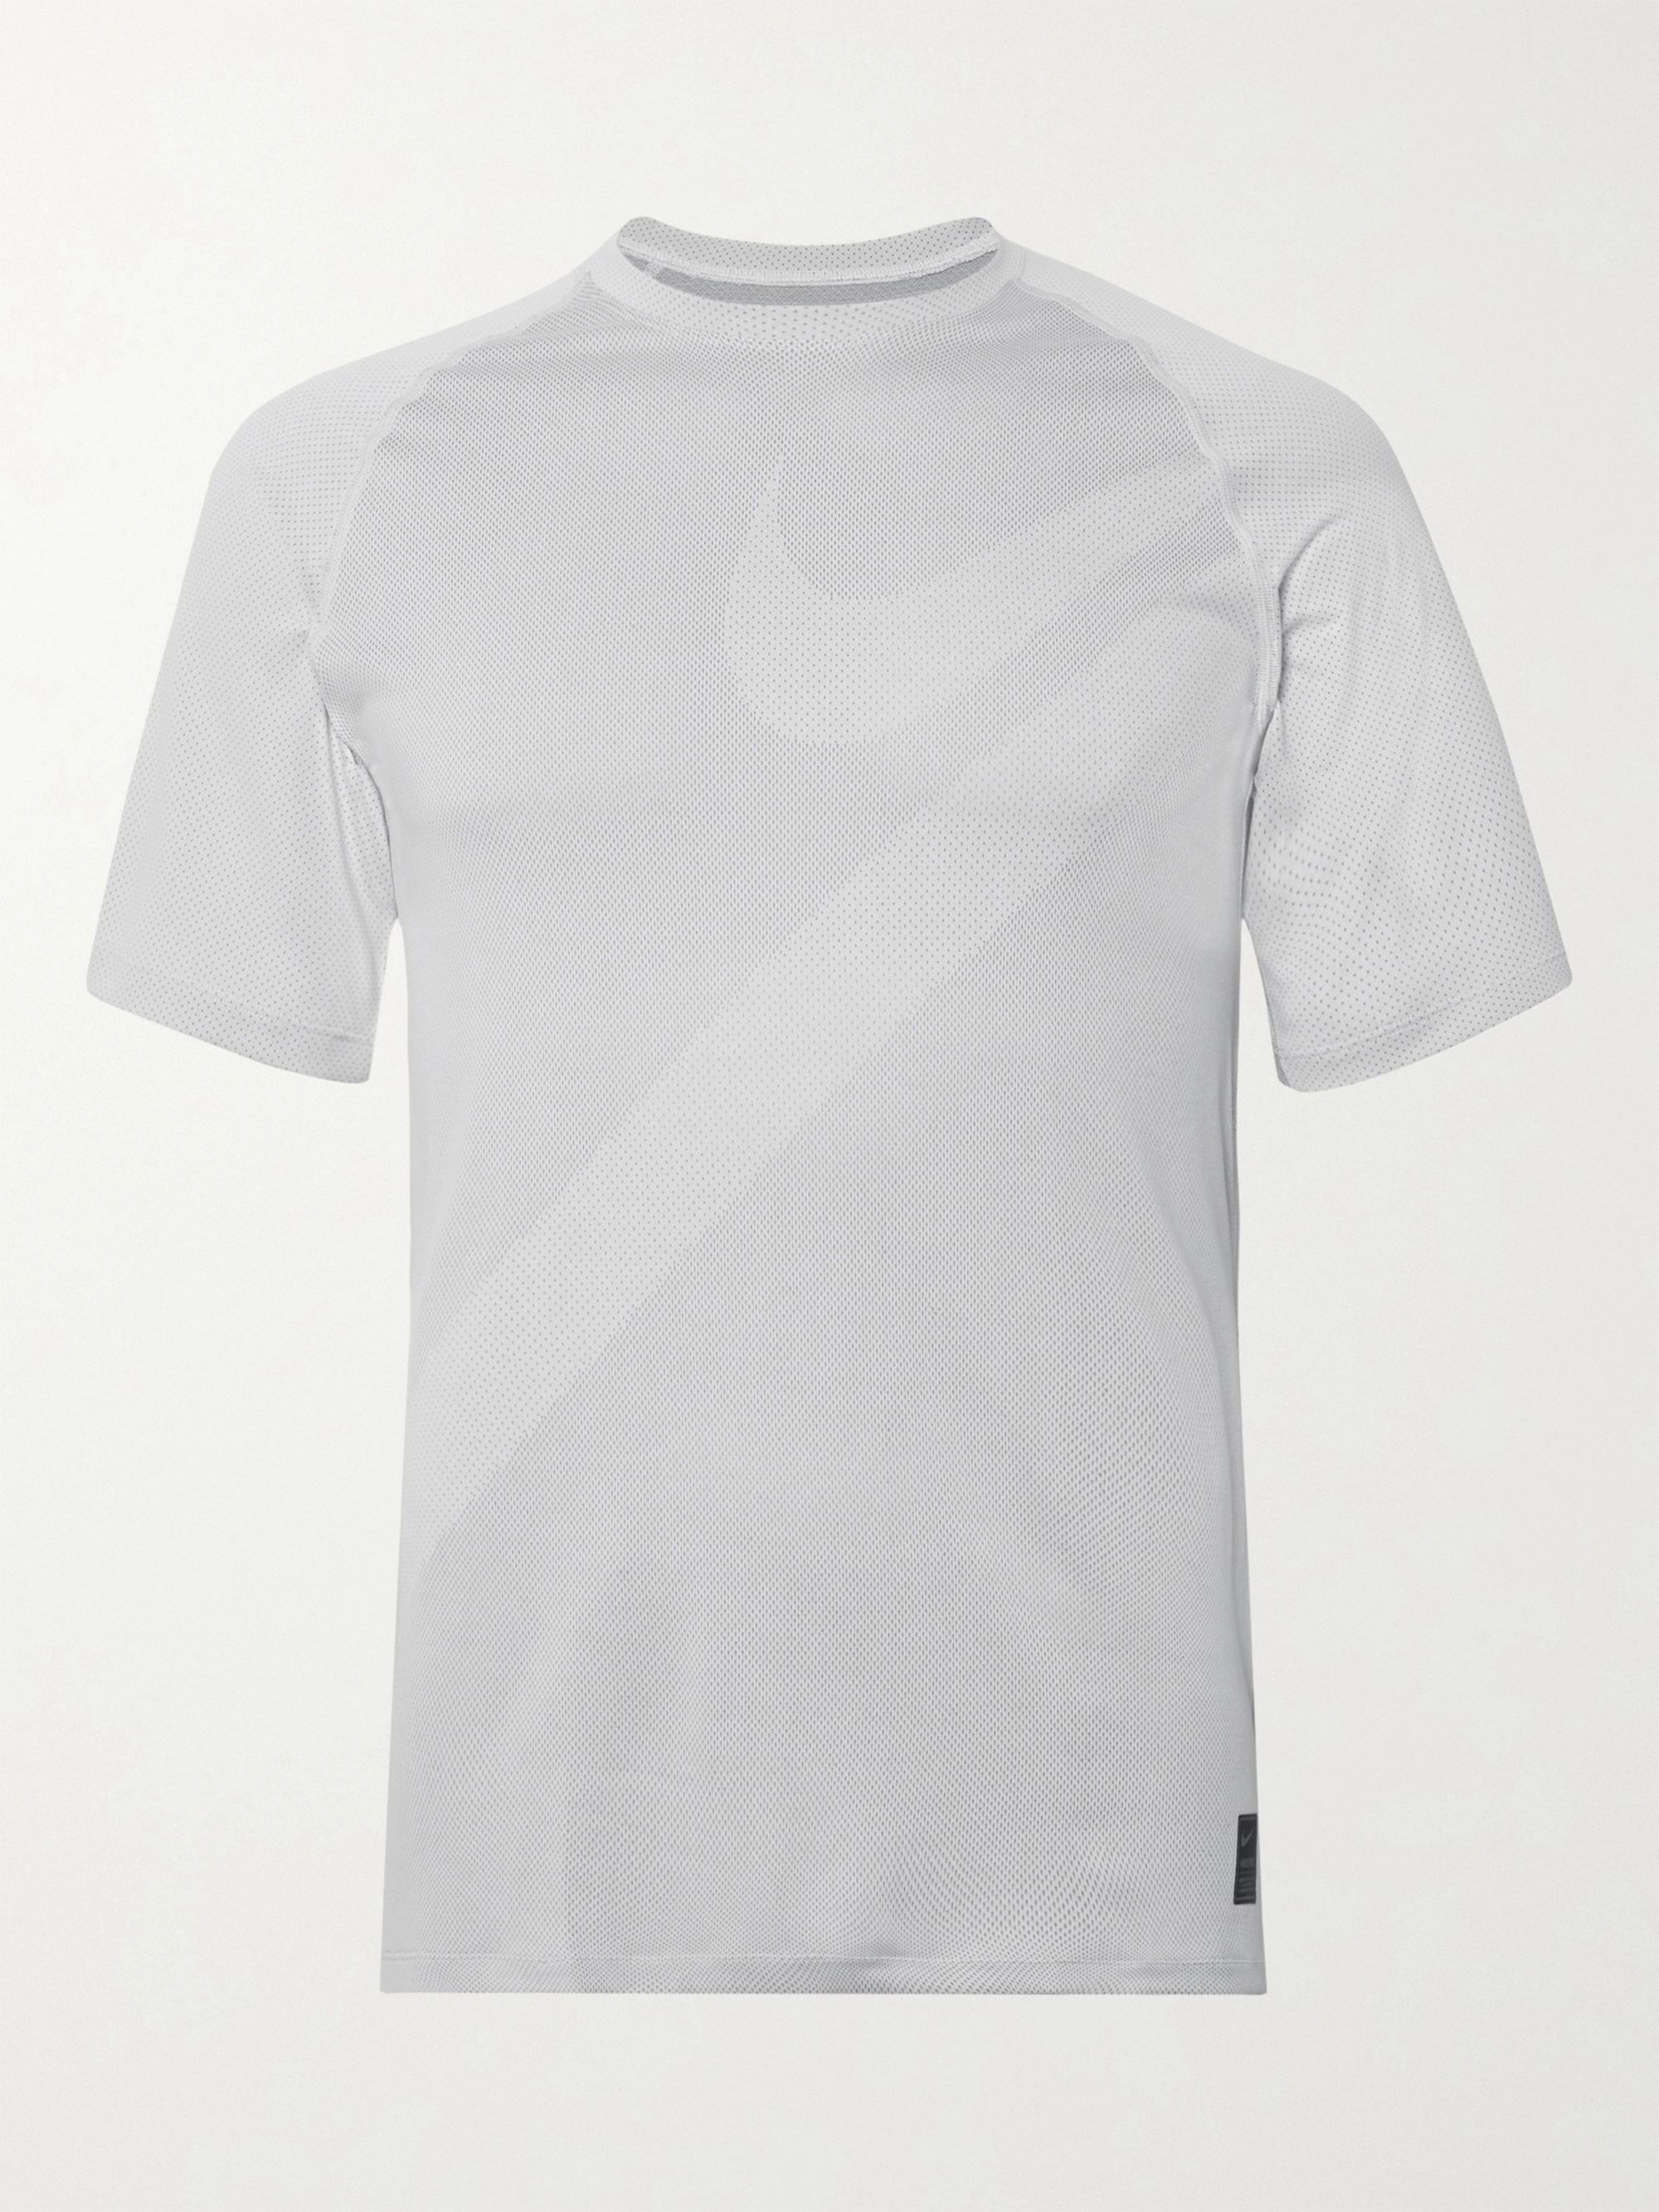 Nike Training Slim-Fit Pro Dri-FIT T-Shirt